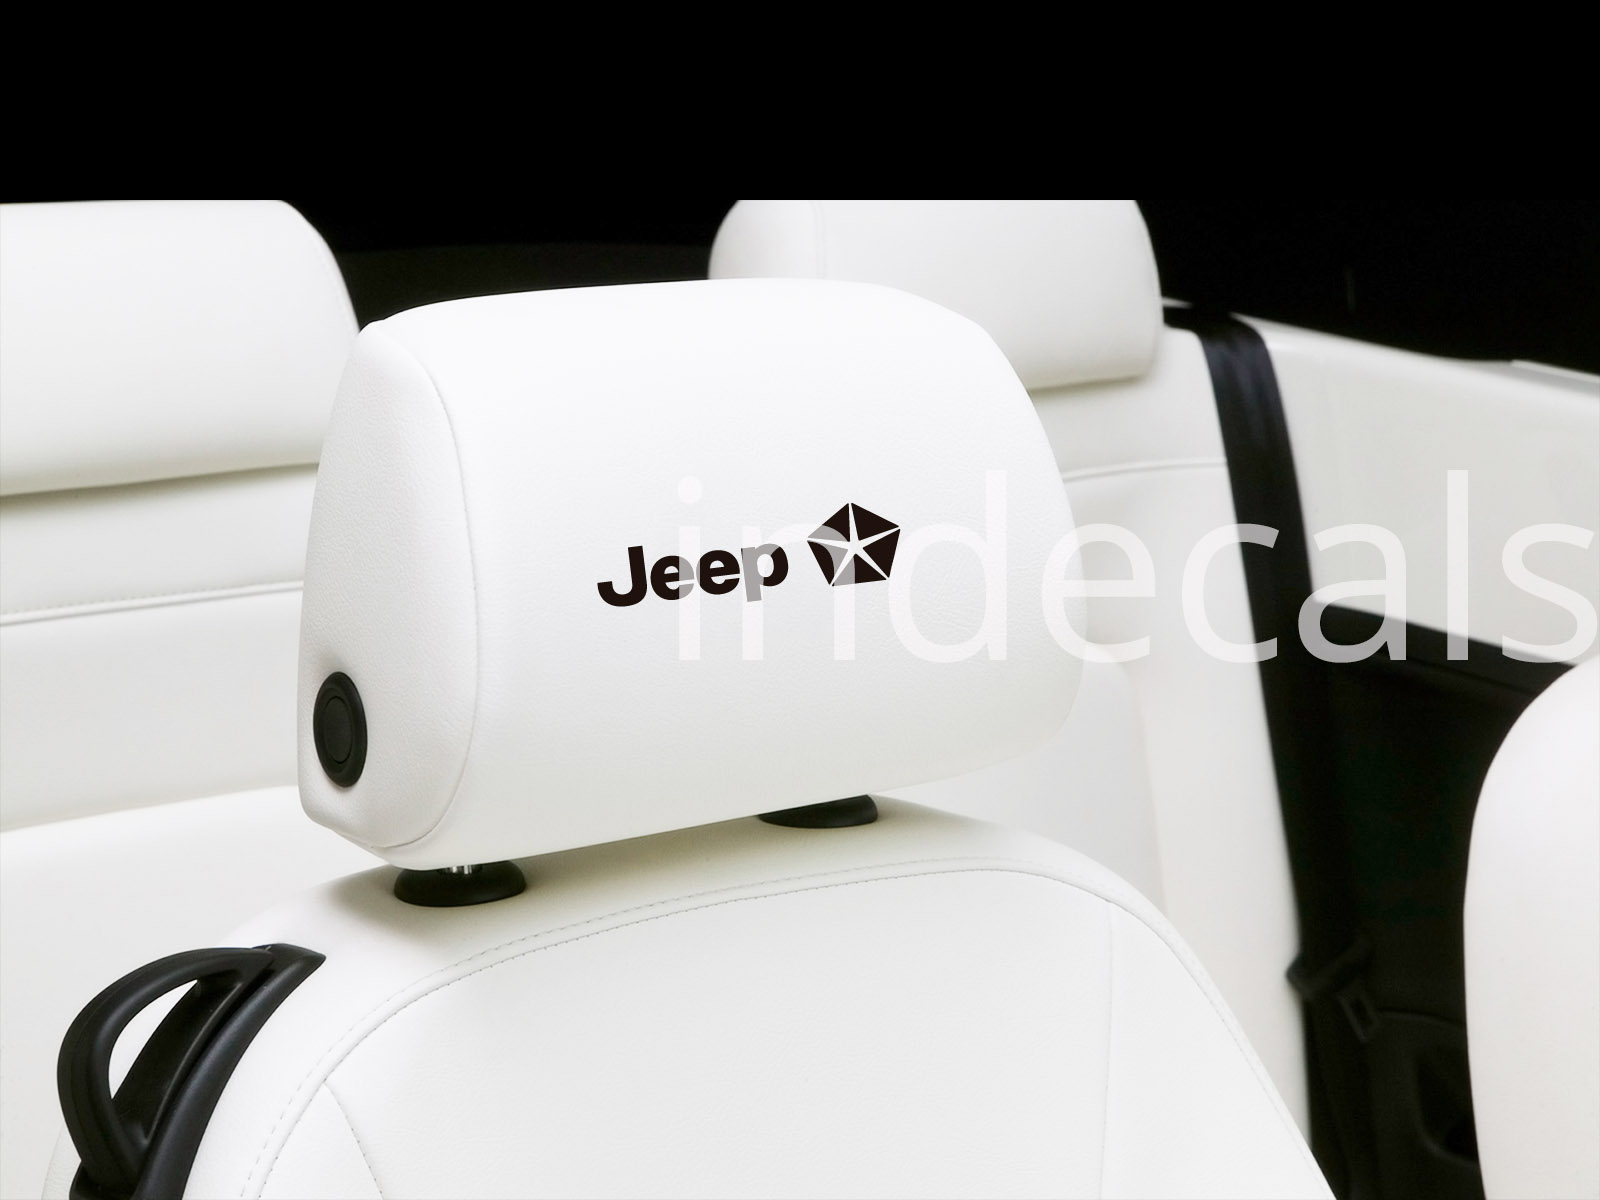 6 x Jeep Stickers for Headrests - Black